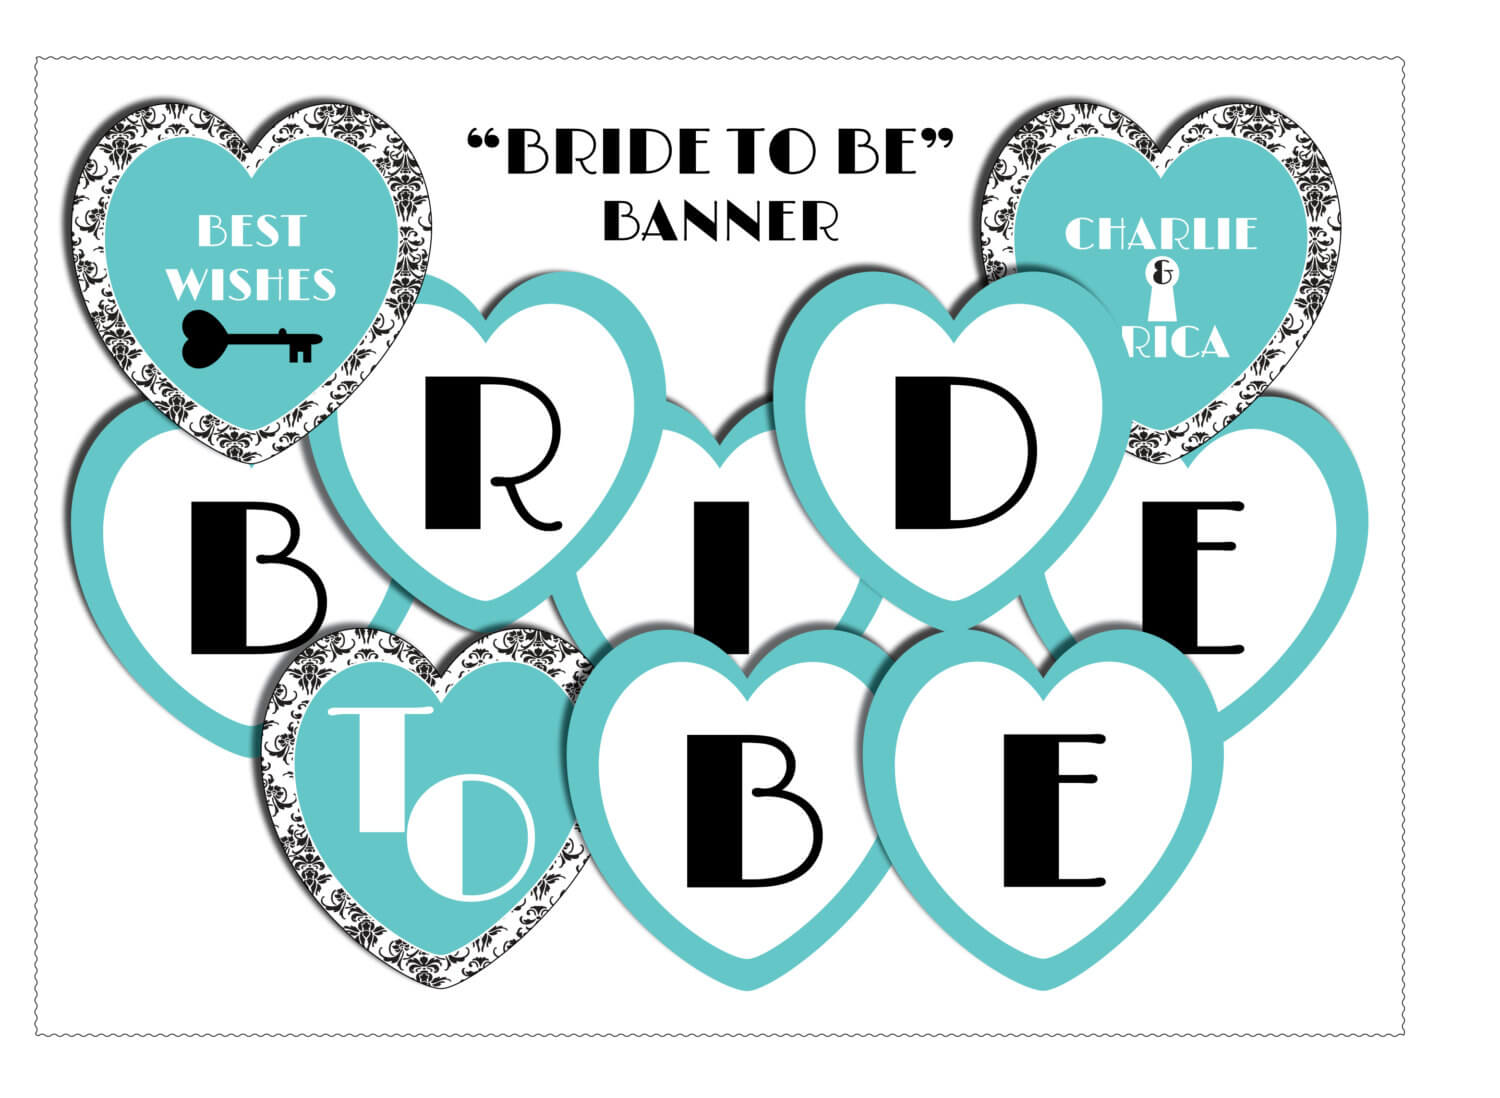 11 Best Photos Of Bride To Be Banner Template - Diy Bridal With Regard To Bridal Shower Banner Template